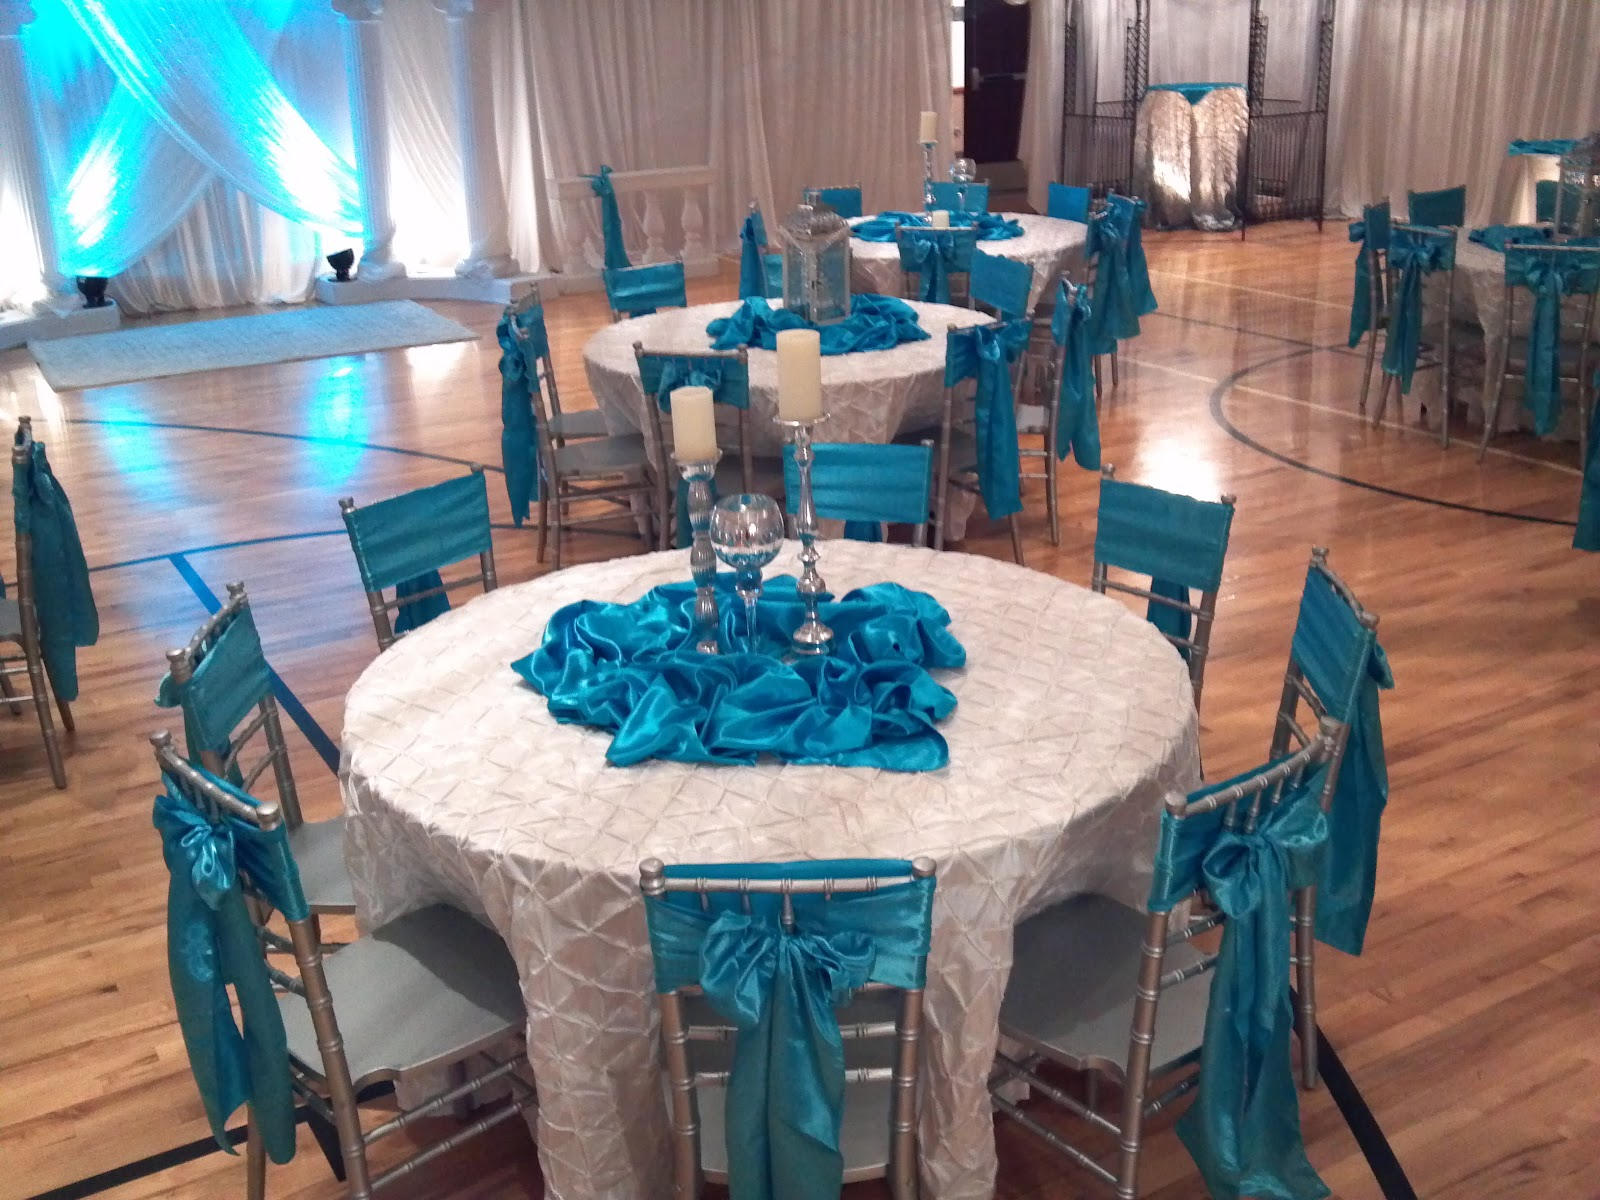 UWeddings: Crystal and Turquoise wedding